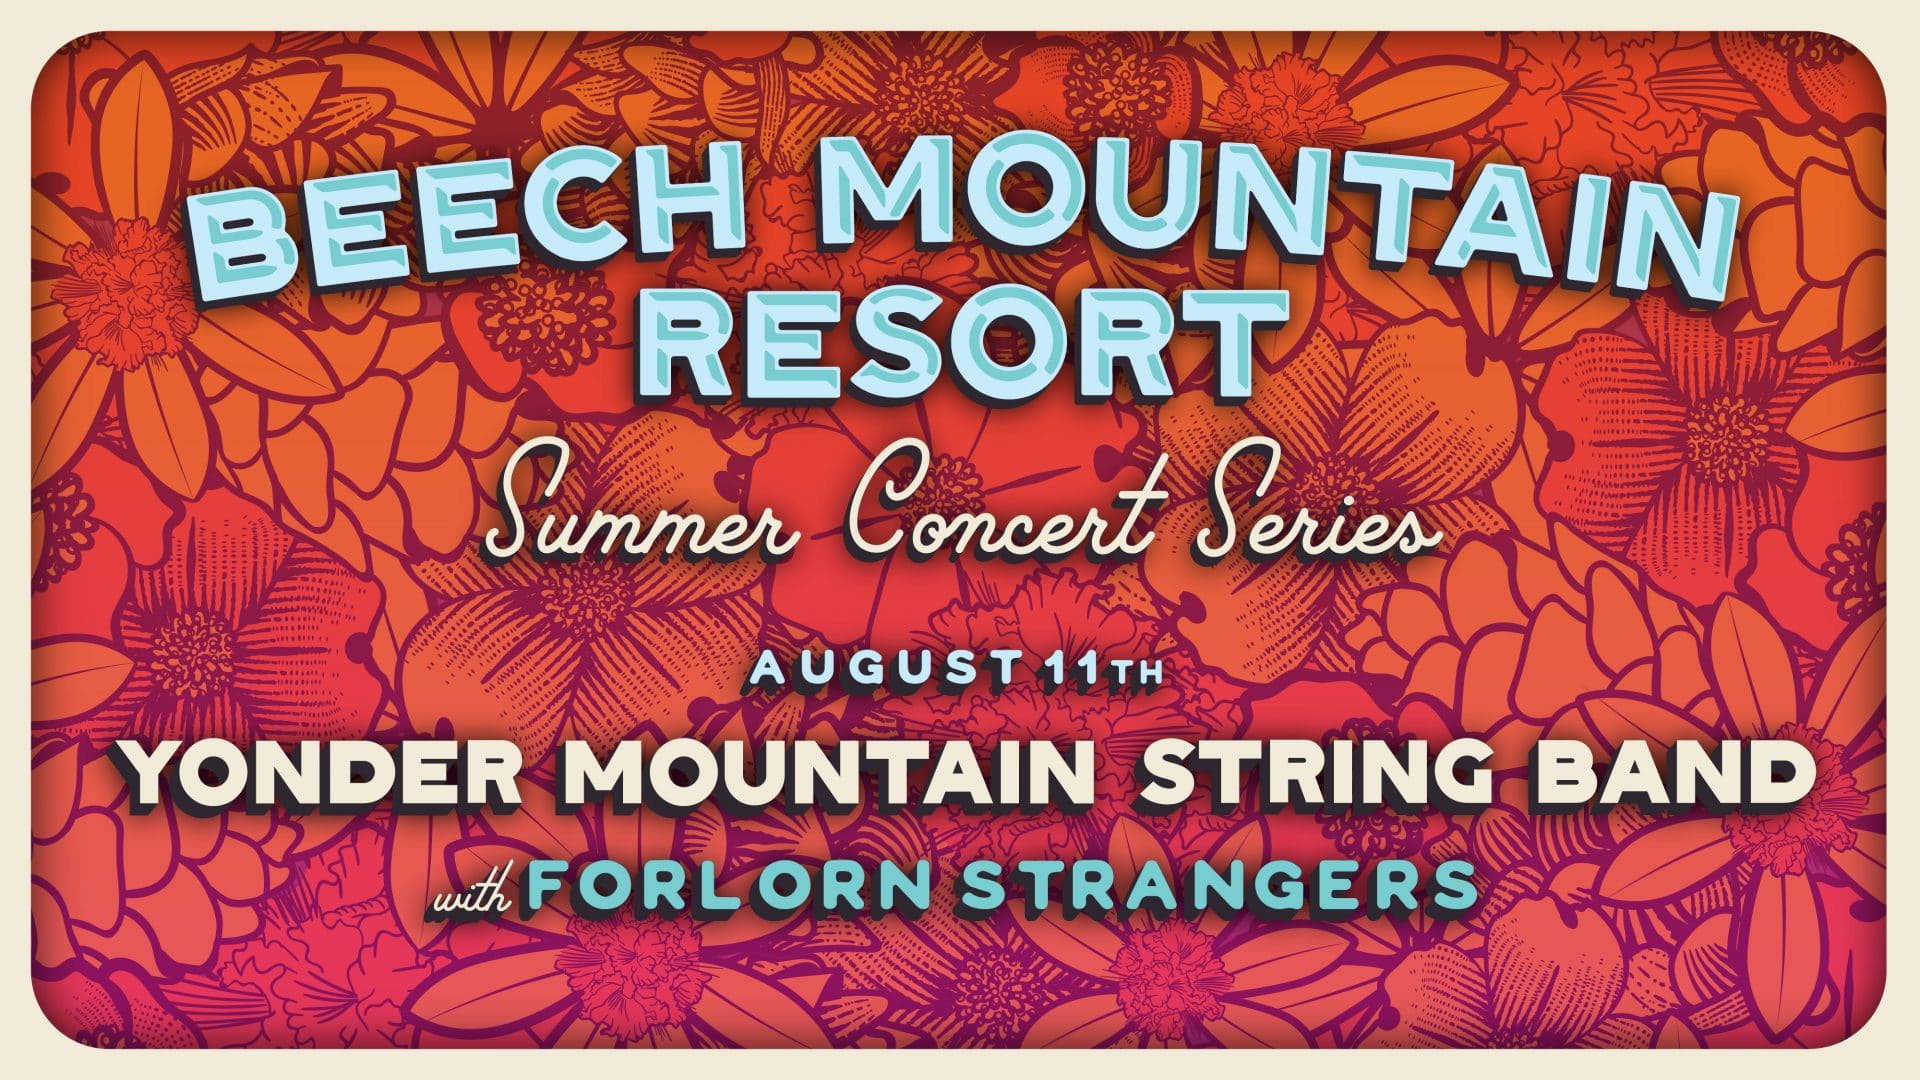 yonder mountain string band with forlorn strangers beech mountain